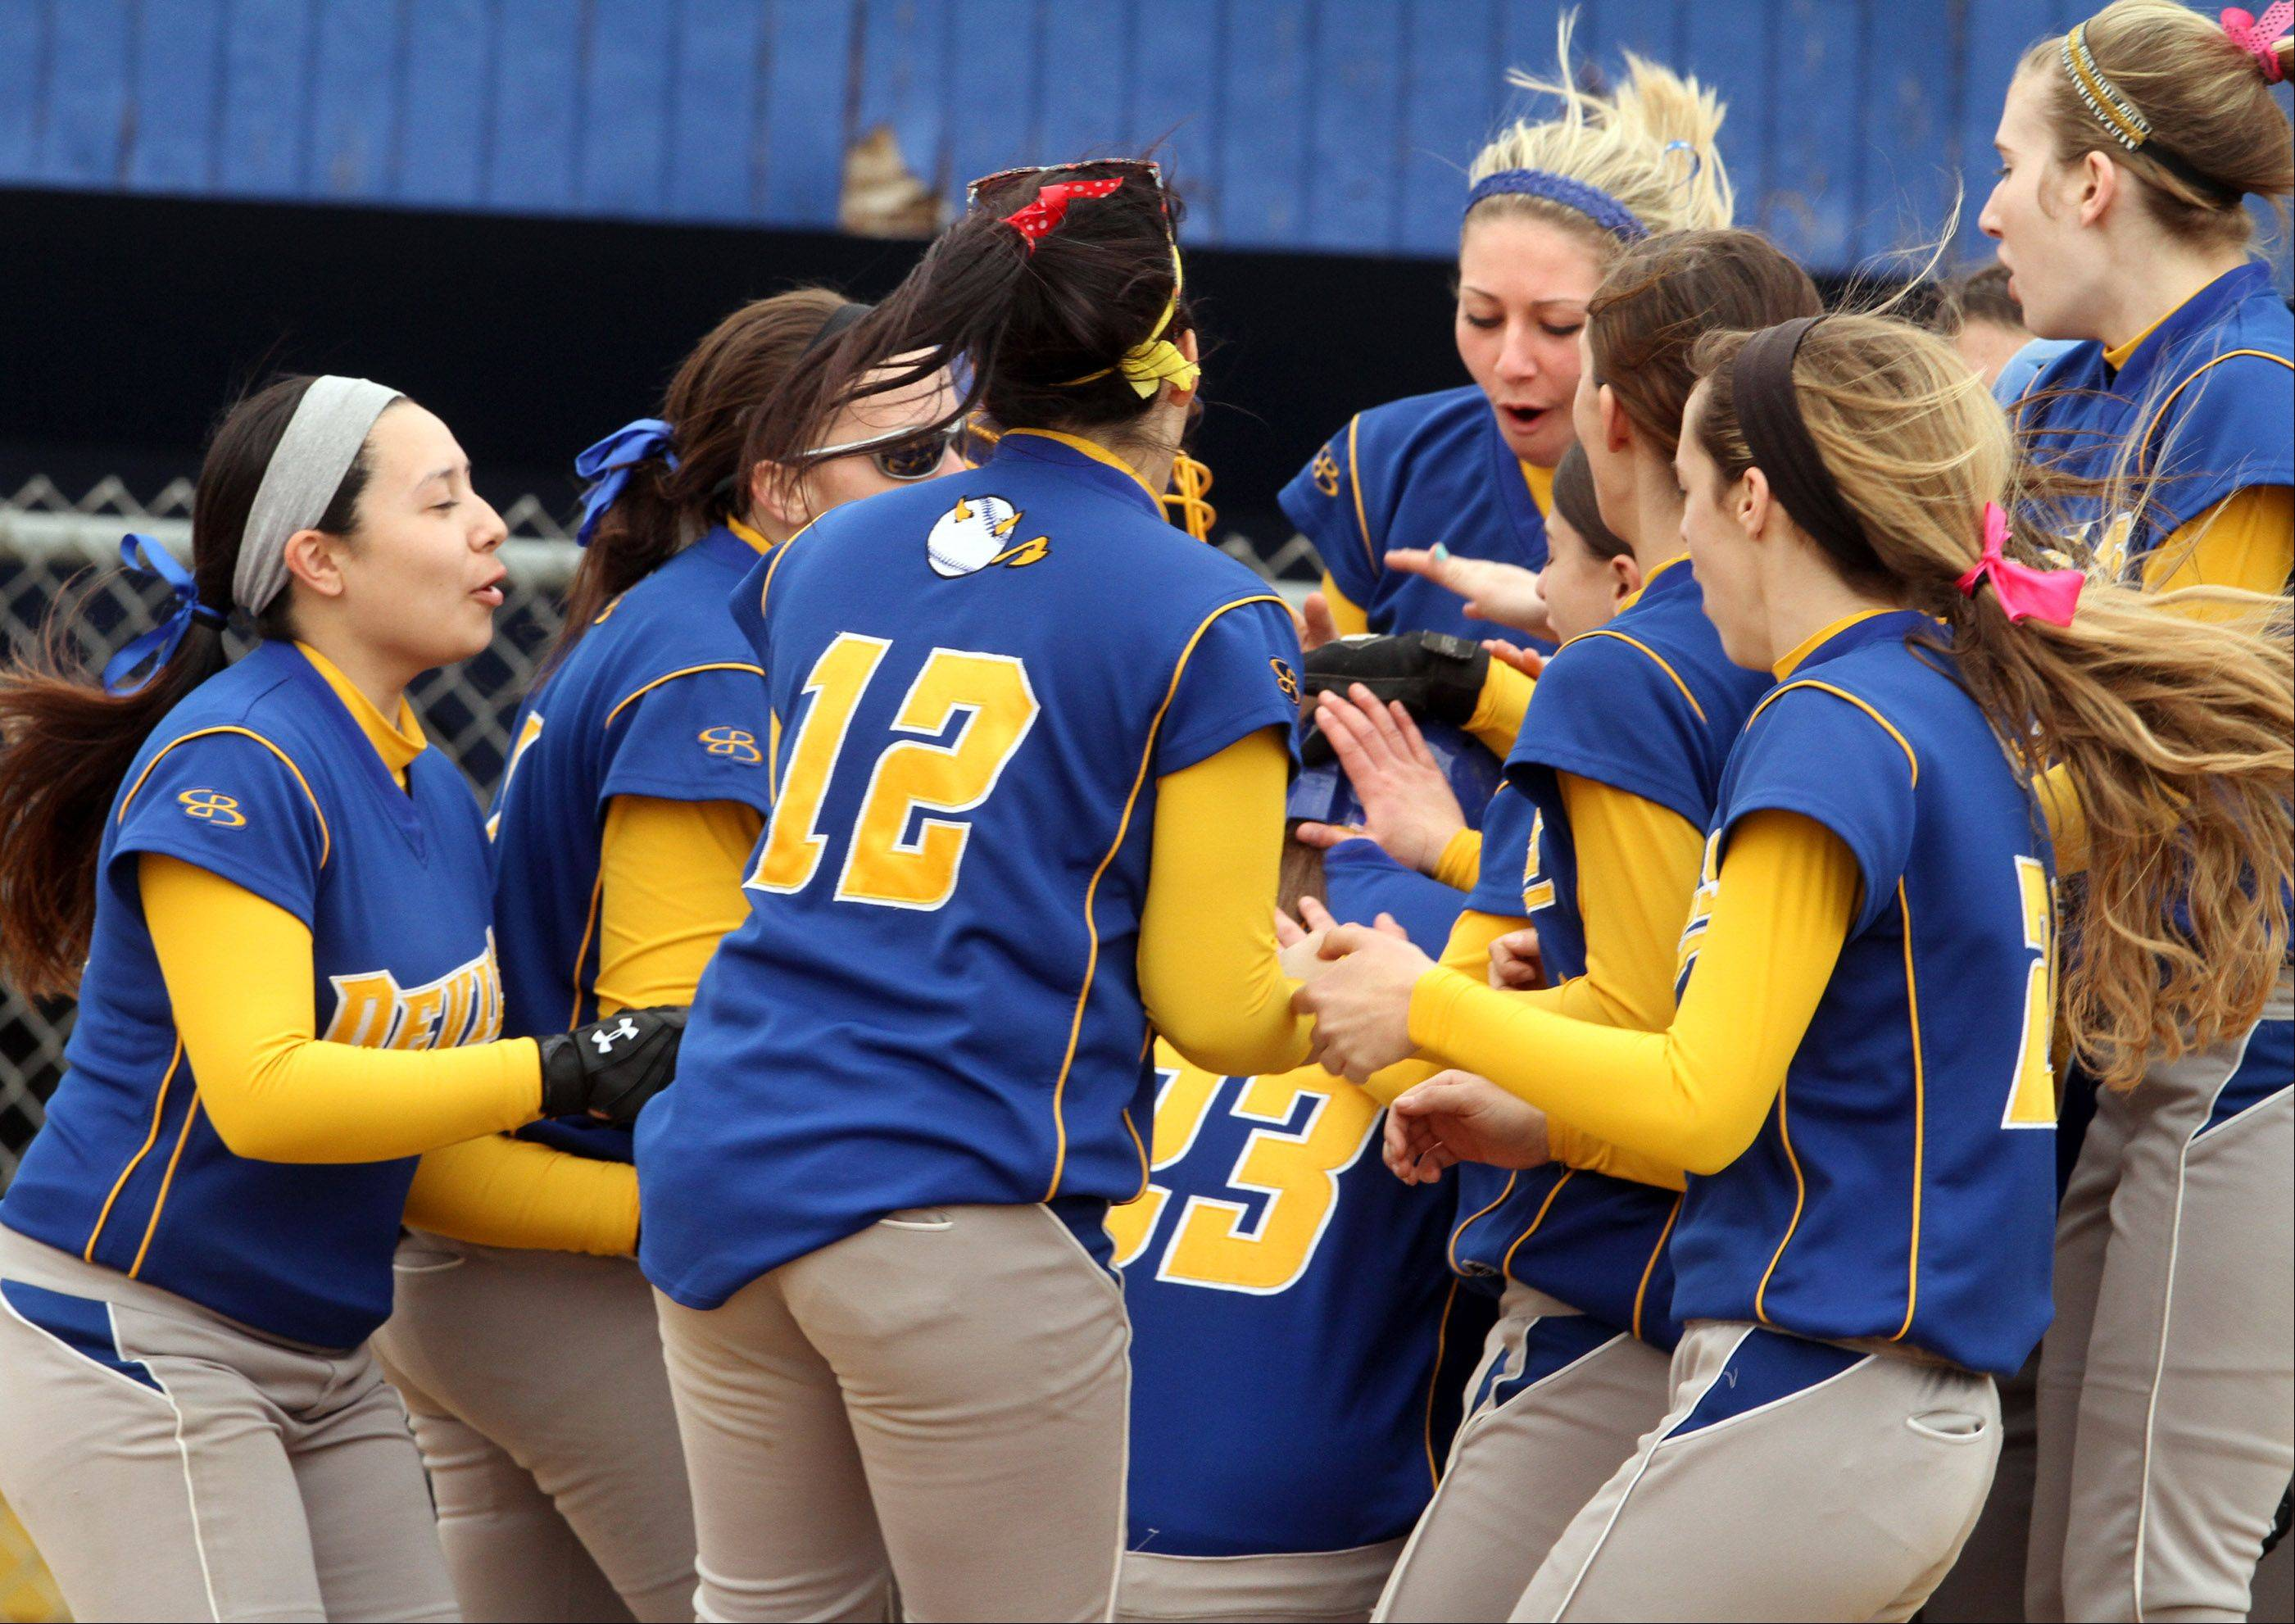 Warren celebrates a home run by Amy Ricci (lower center, No. 23) against Carmel pitcher Mia Dicara at Warren on Saturday.